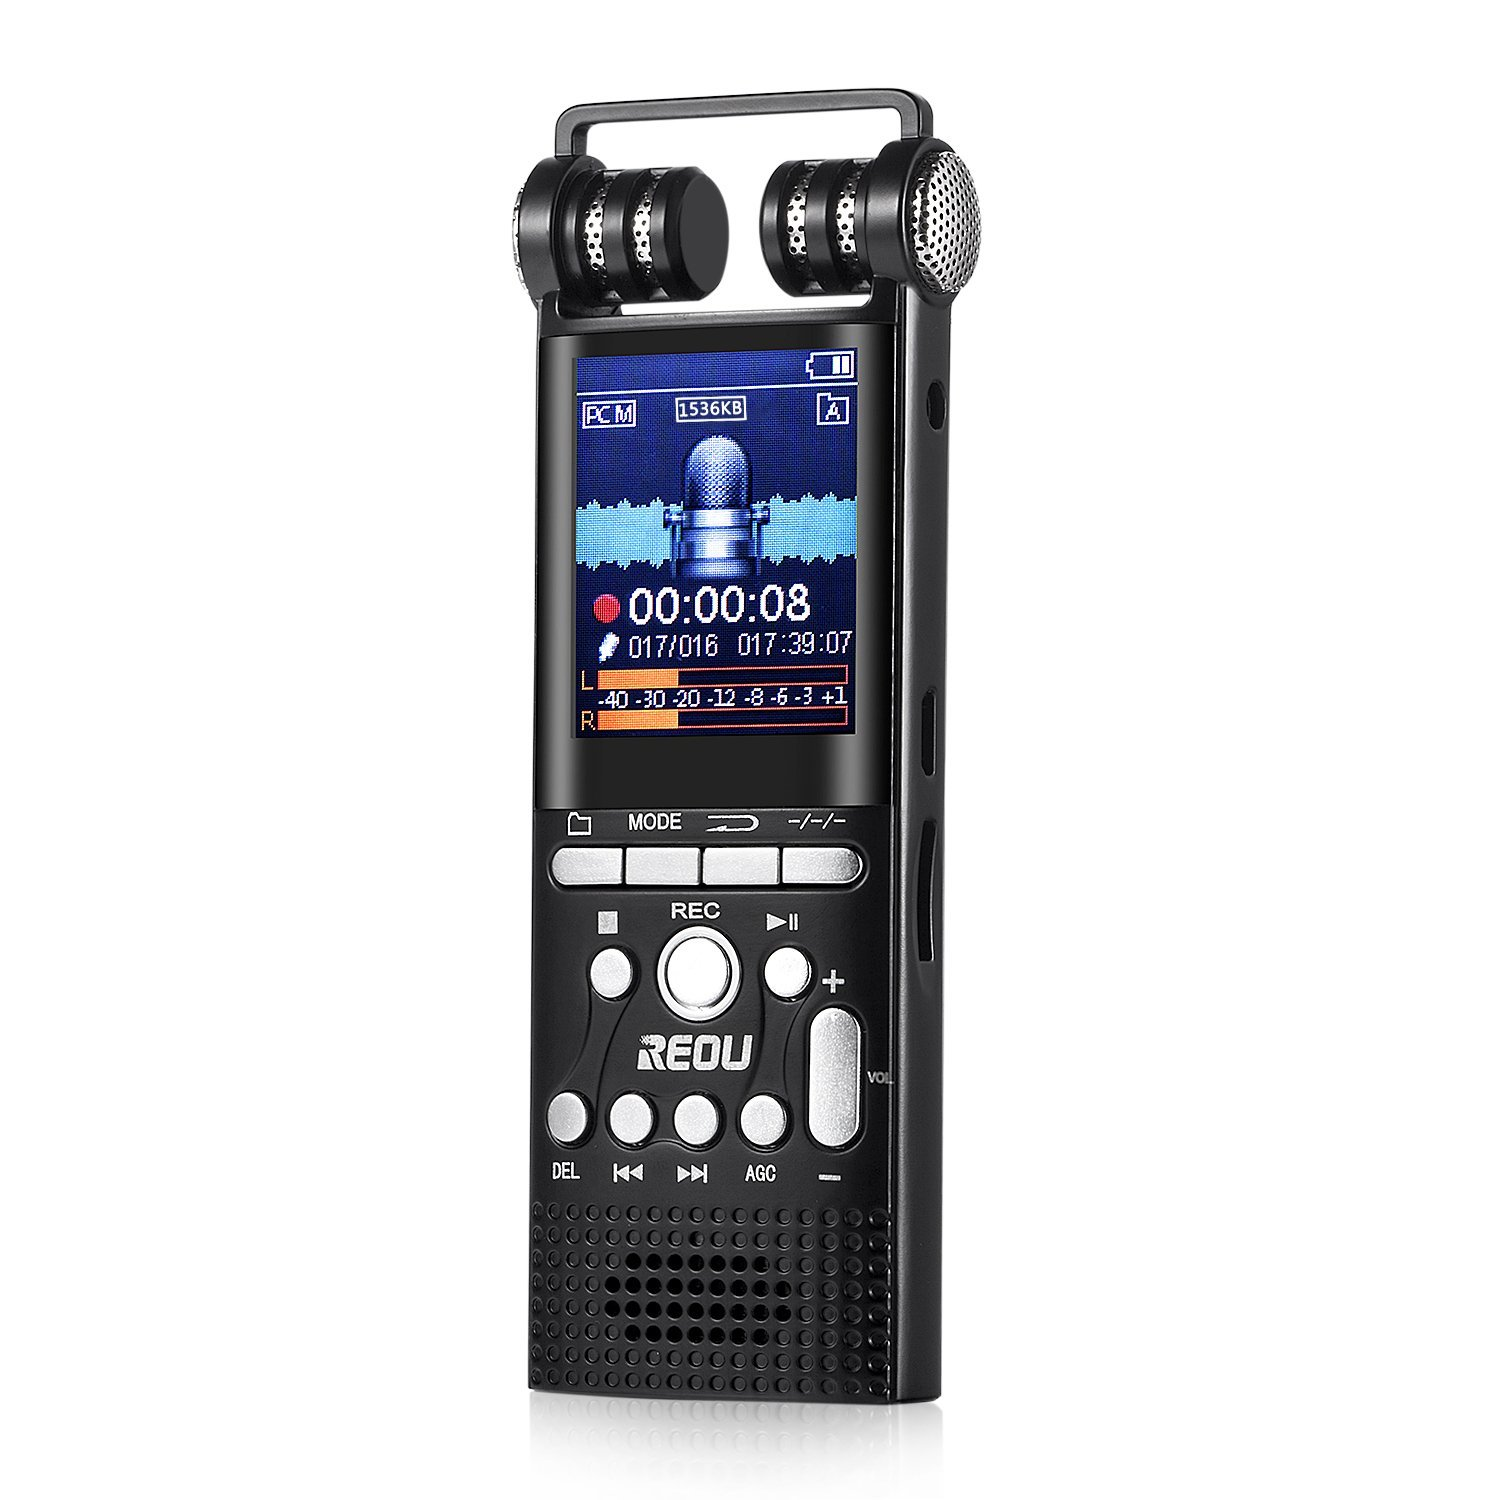 REOU Digital Voice Recorder Smartphone Landline Call Sound Recorder, 4GB Voice Activated Recorder with MP3 Player, DSP Noise Reduction, Up to 128GB, for Interview, Learning, etc.